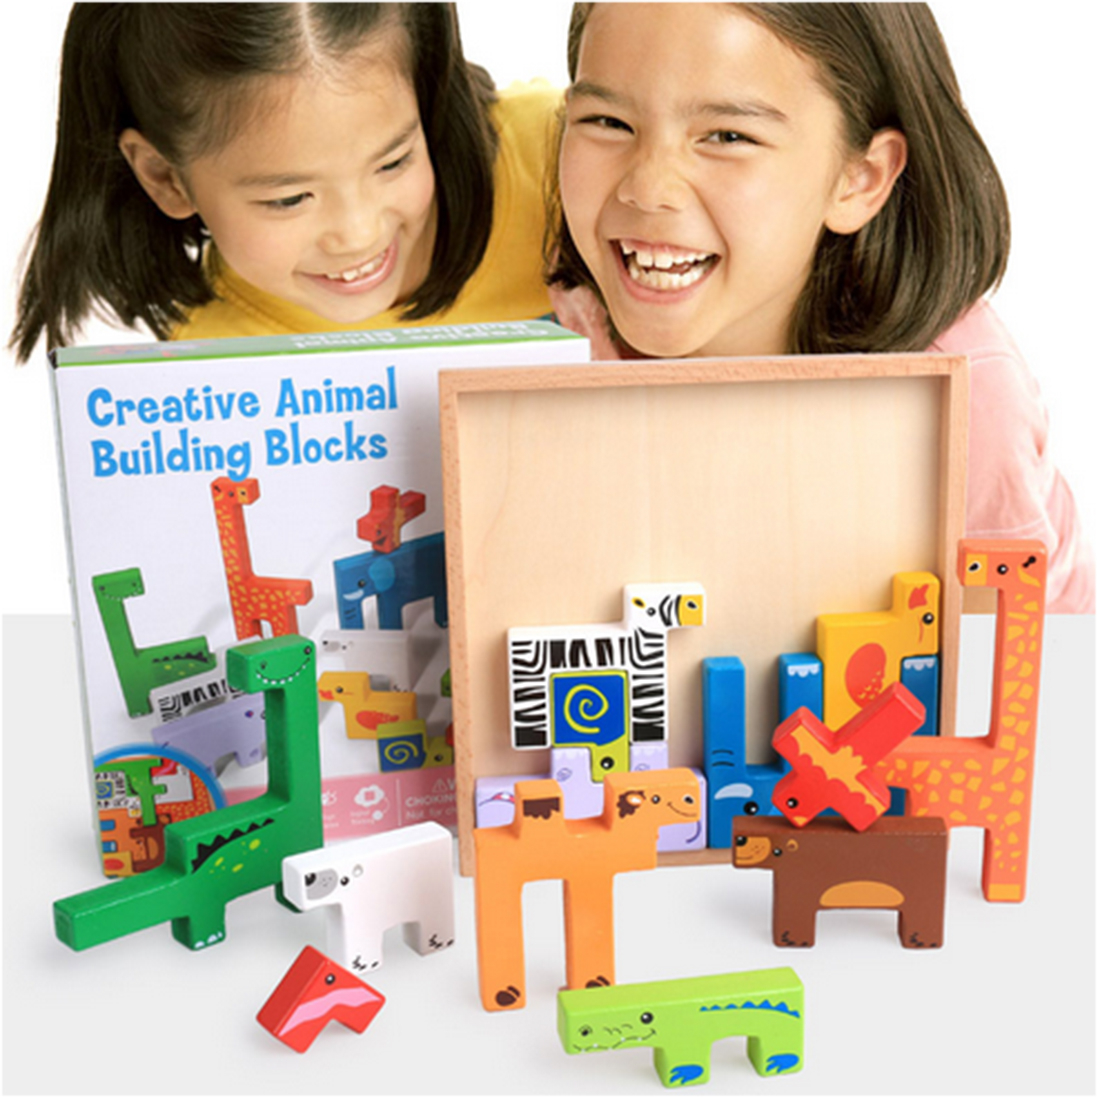 UTOYSLAND Cute Wooden Building Blocks 3D Animals Shape Creative Educational Toys Table Board Game for Children Kids